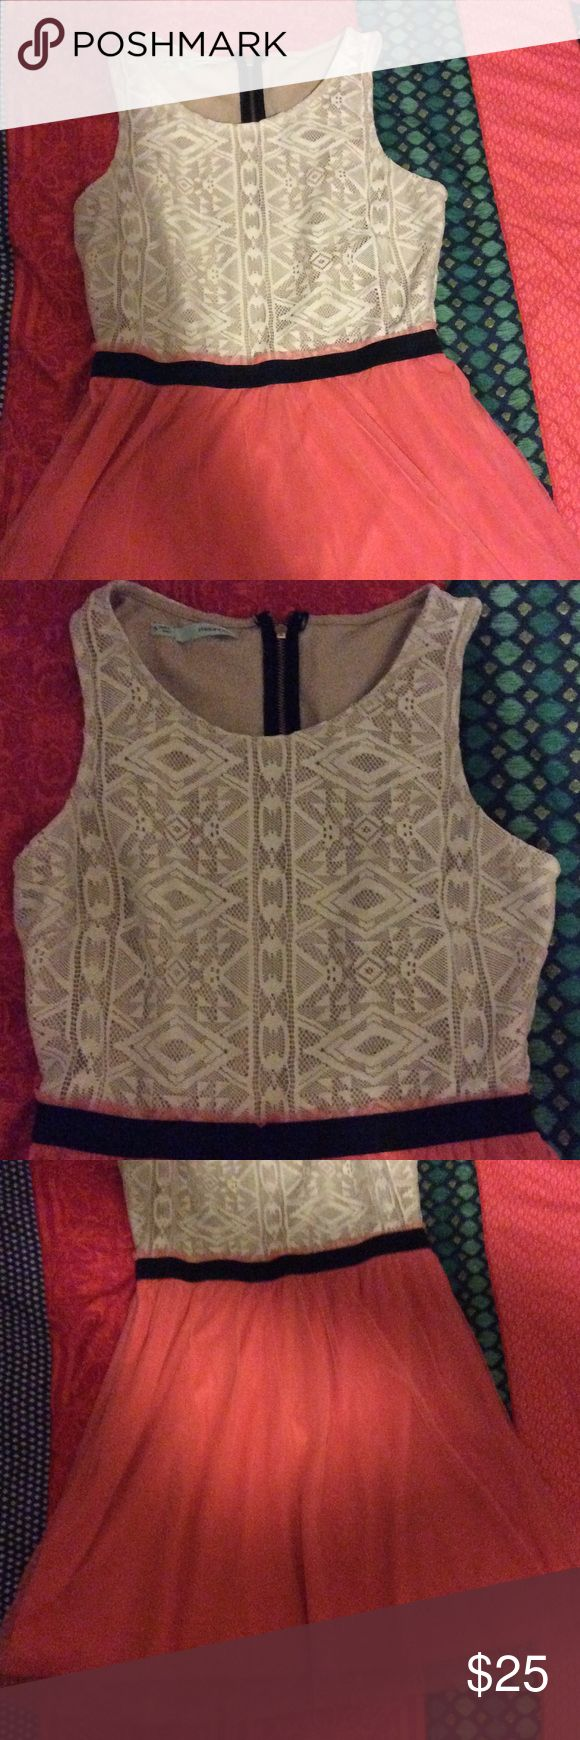 Aztec top peachy bottom dress A fun dress I purchased awhile ago! Does run shorter on me and I am 5'7 (hits above the knees) very stretchy waist band and soft material! Maurices Dresses Mini